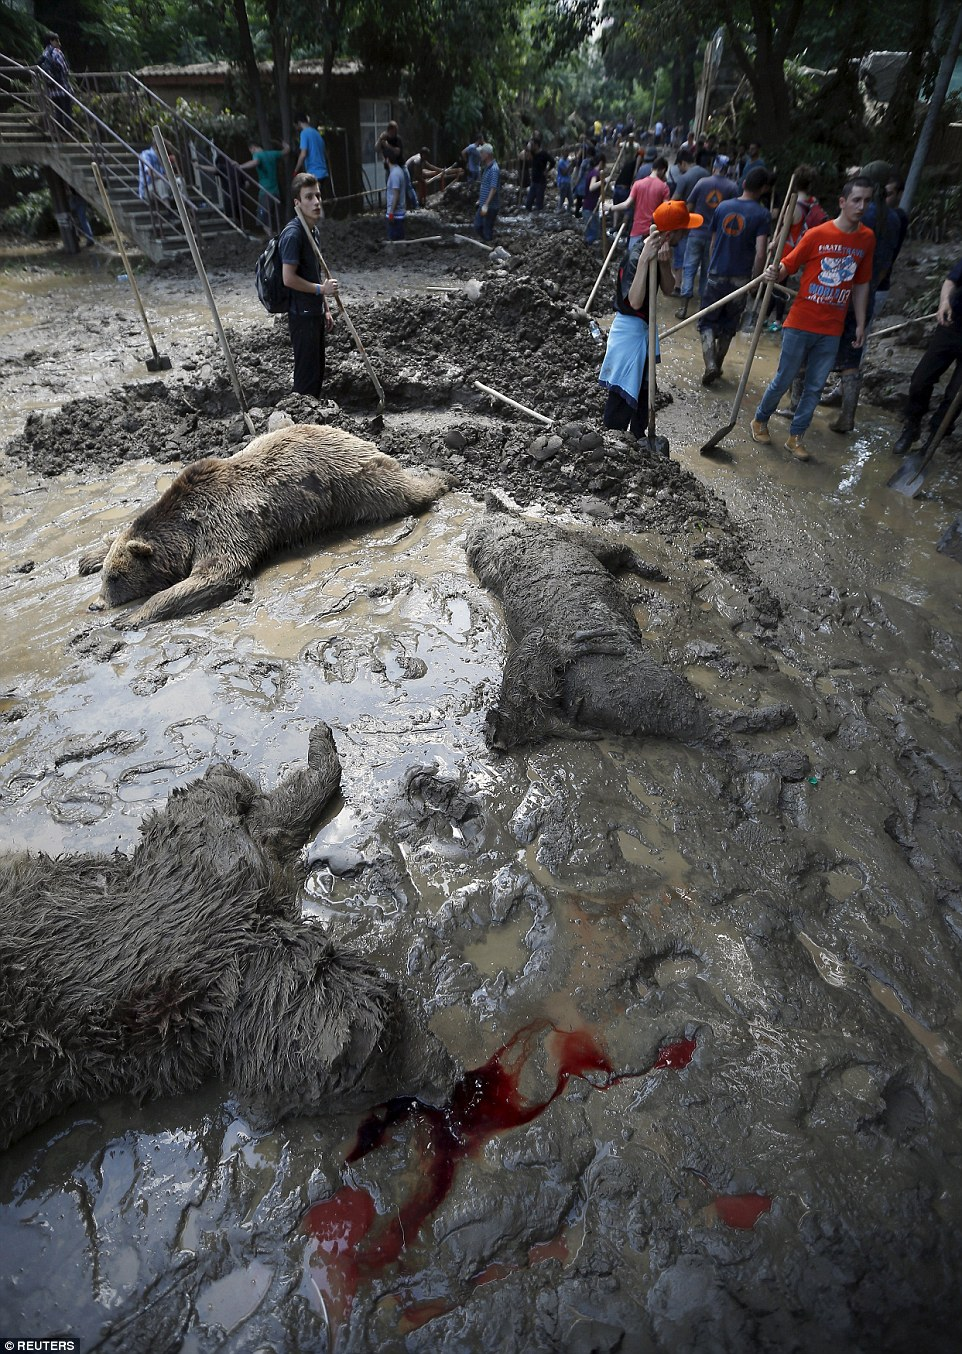 A pool of blood lies next to the body of a dead bear as workers build burials as a major clean-up operation started today